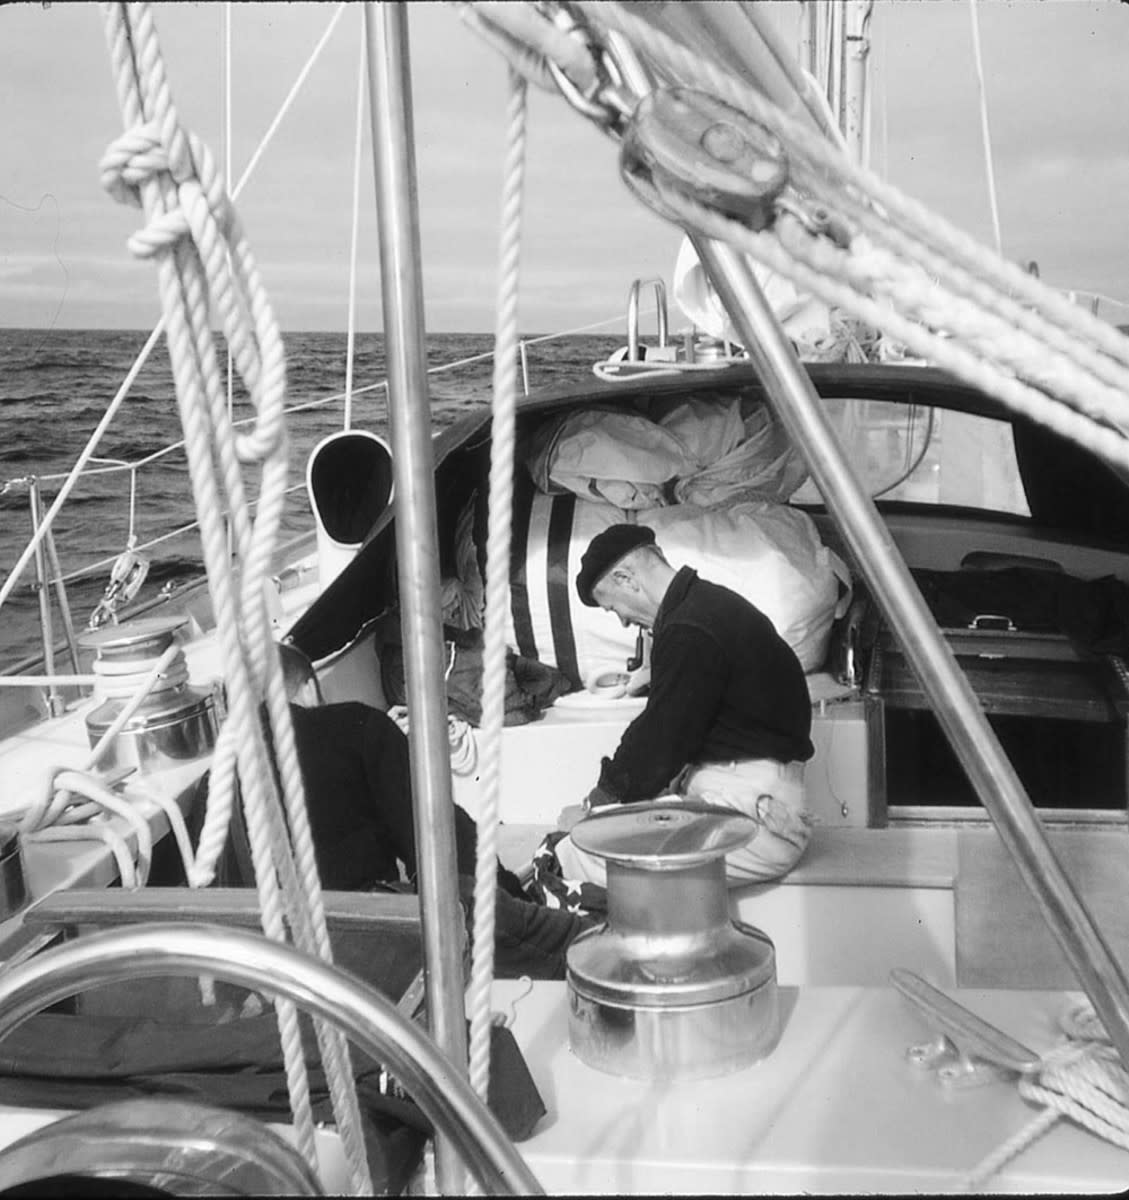 In the cockpit, a crewmember confers with the helmsman about the average course steered during his watch, and contemplates a course change.